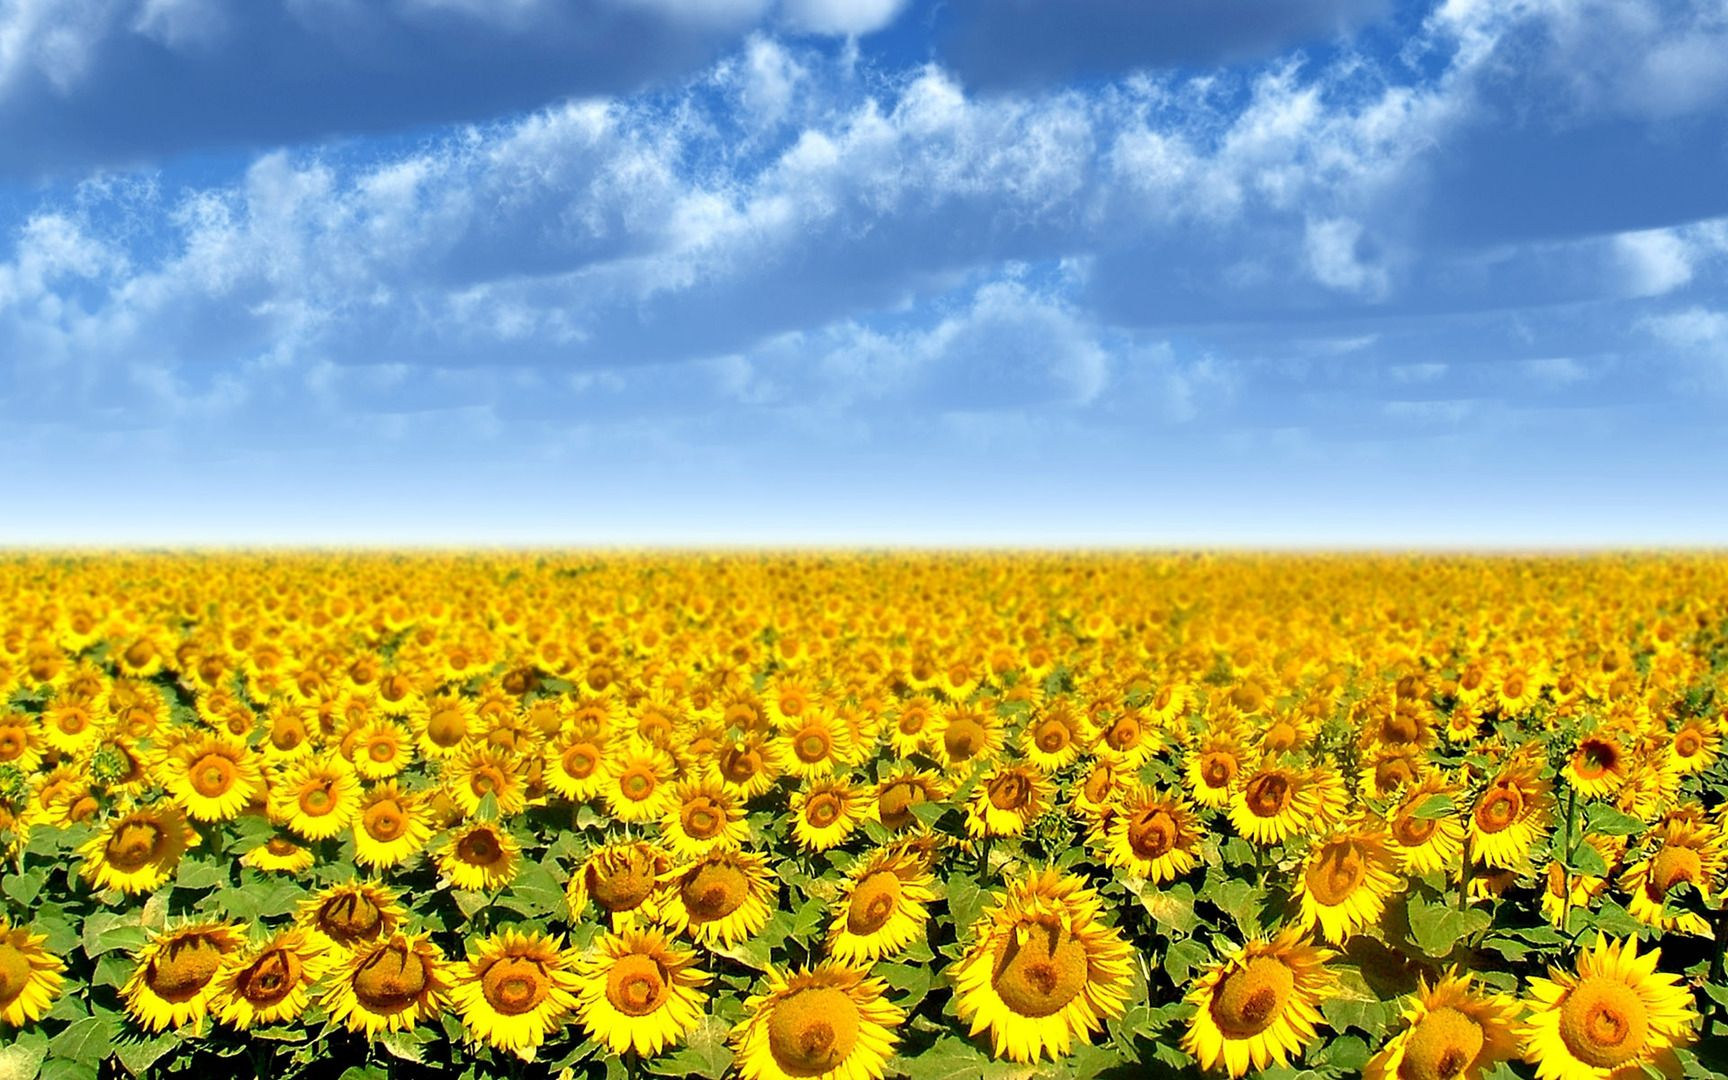 Field Of Sunflowers Wallpaper: Sunflower Field Flowers 1080p HD Wallpaper For Desktop